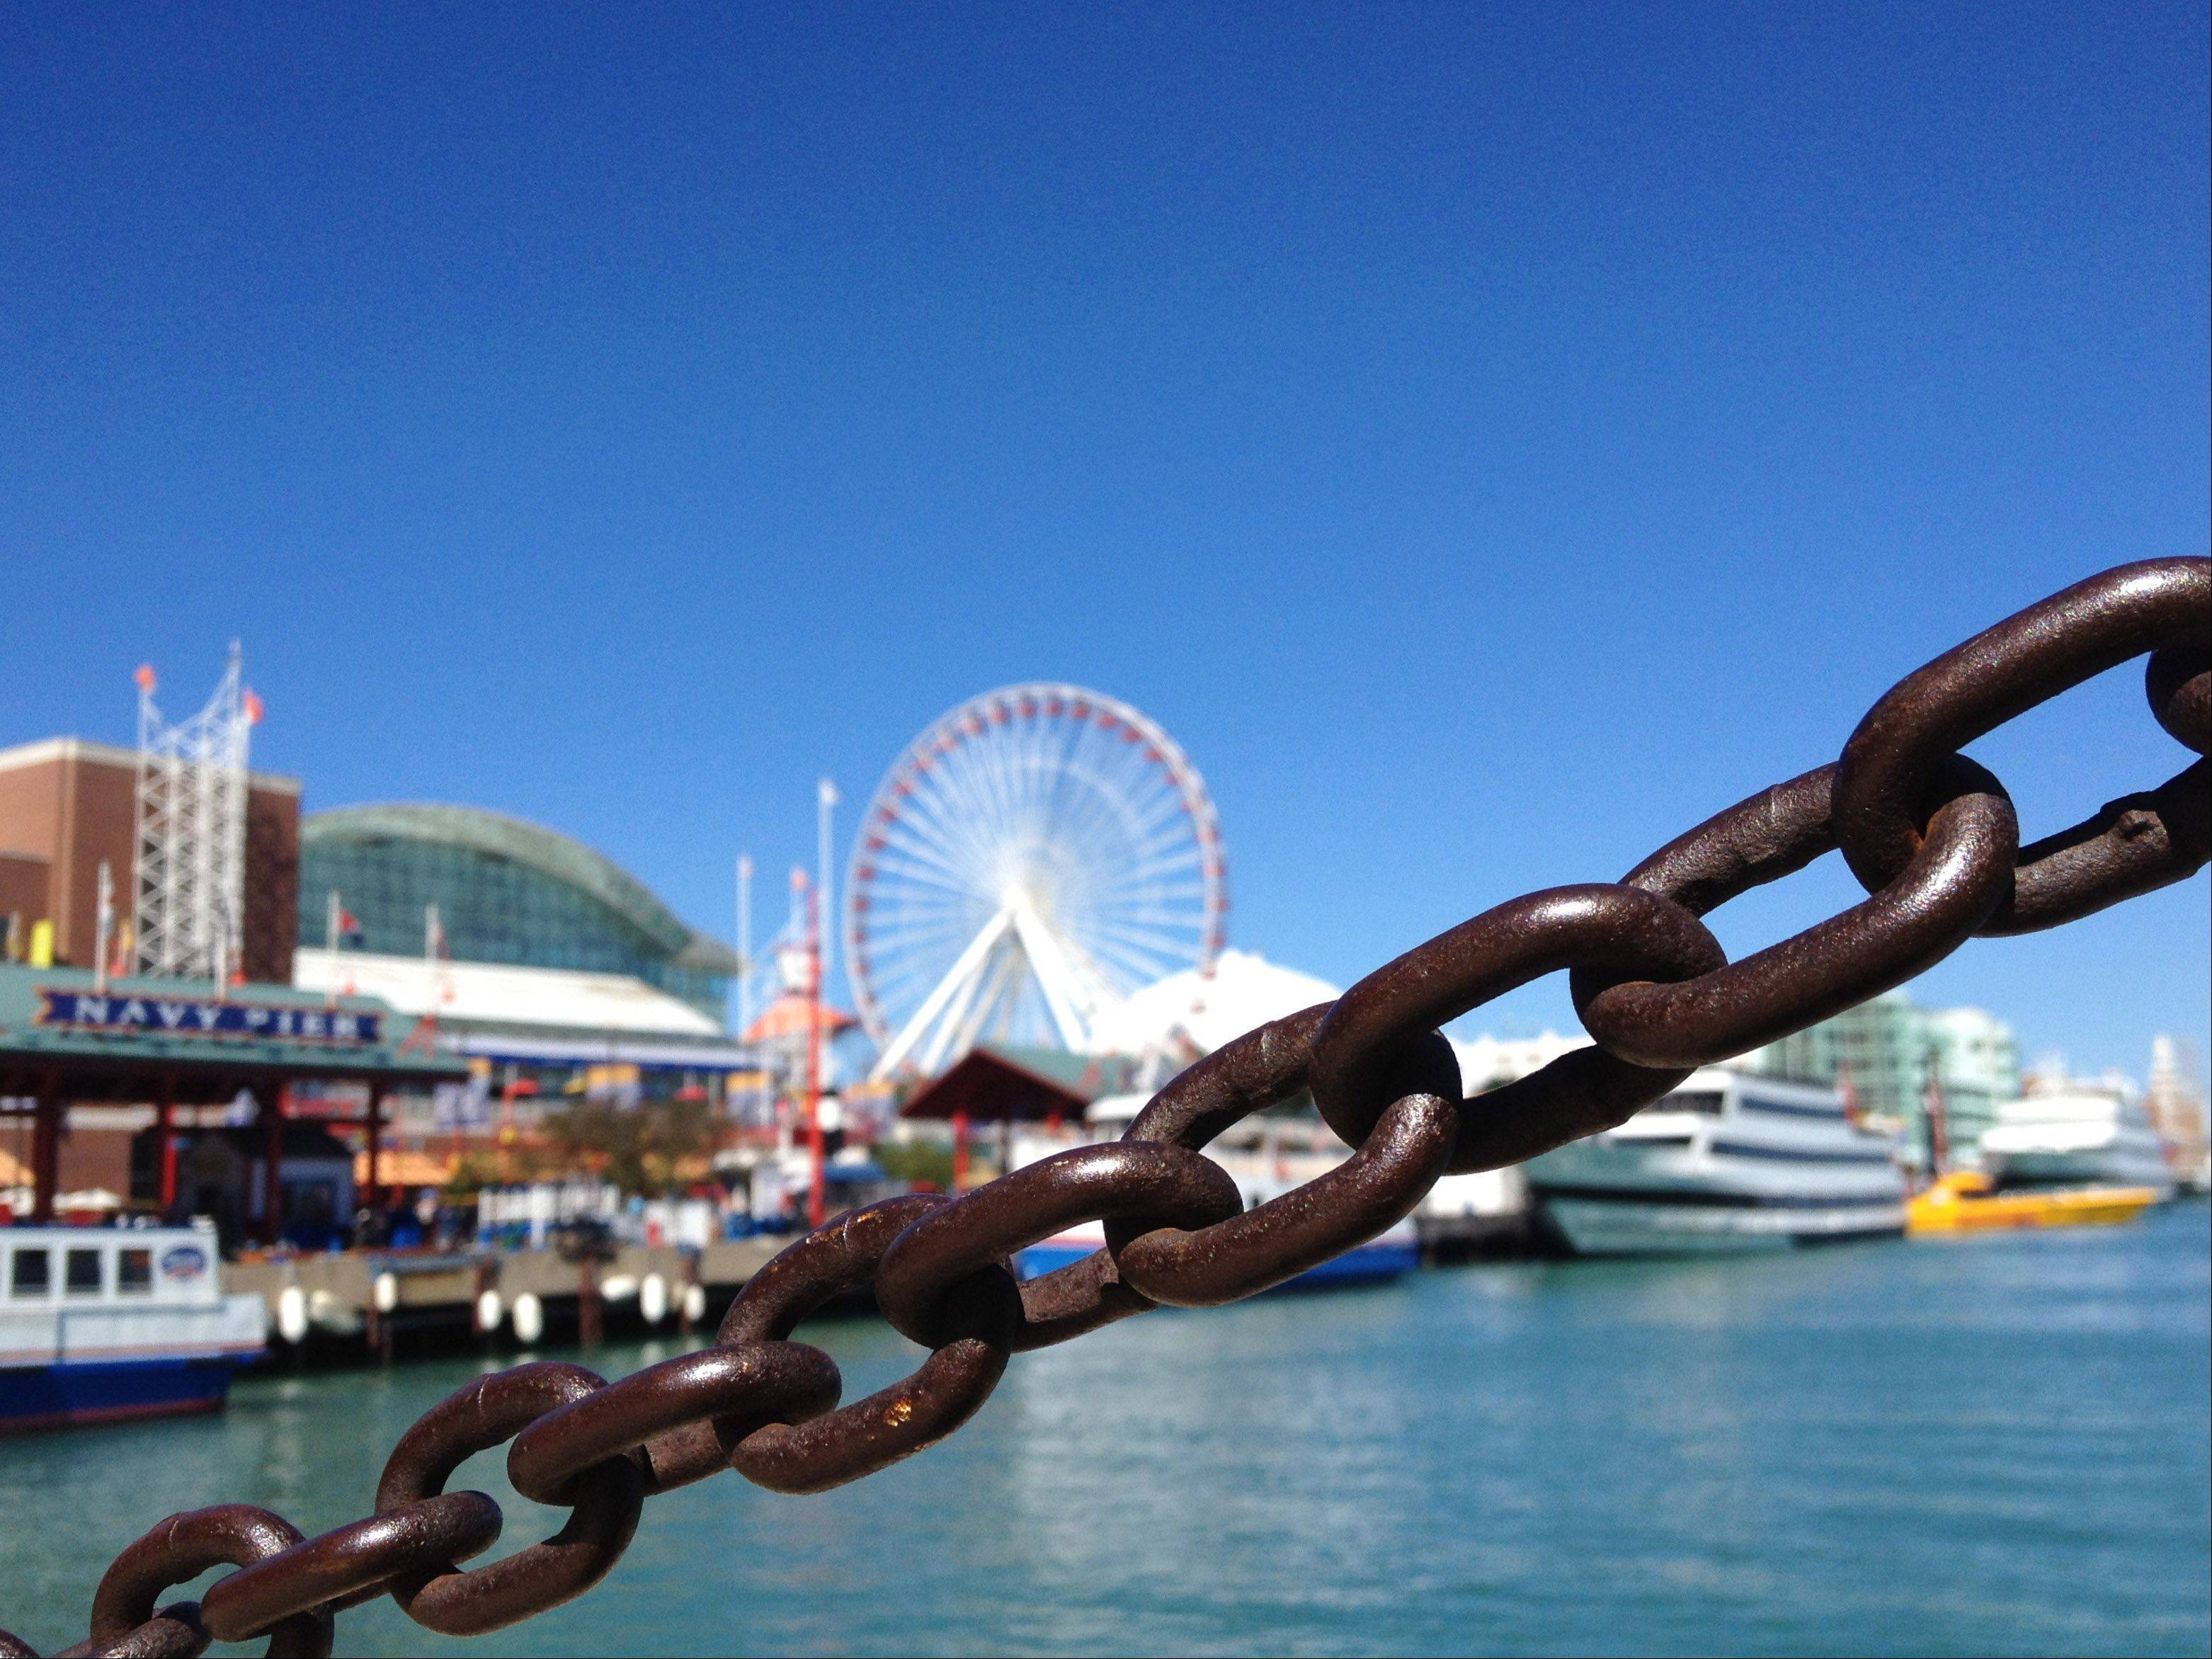 A chain stretches across the deck of Navy Pier in downtown Chicago last summer. The Ferris wheel can be seen in the background along Lake Michigan.